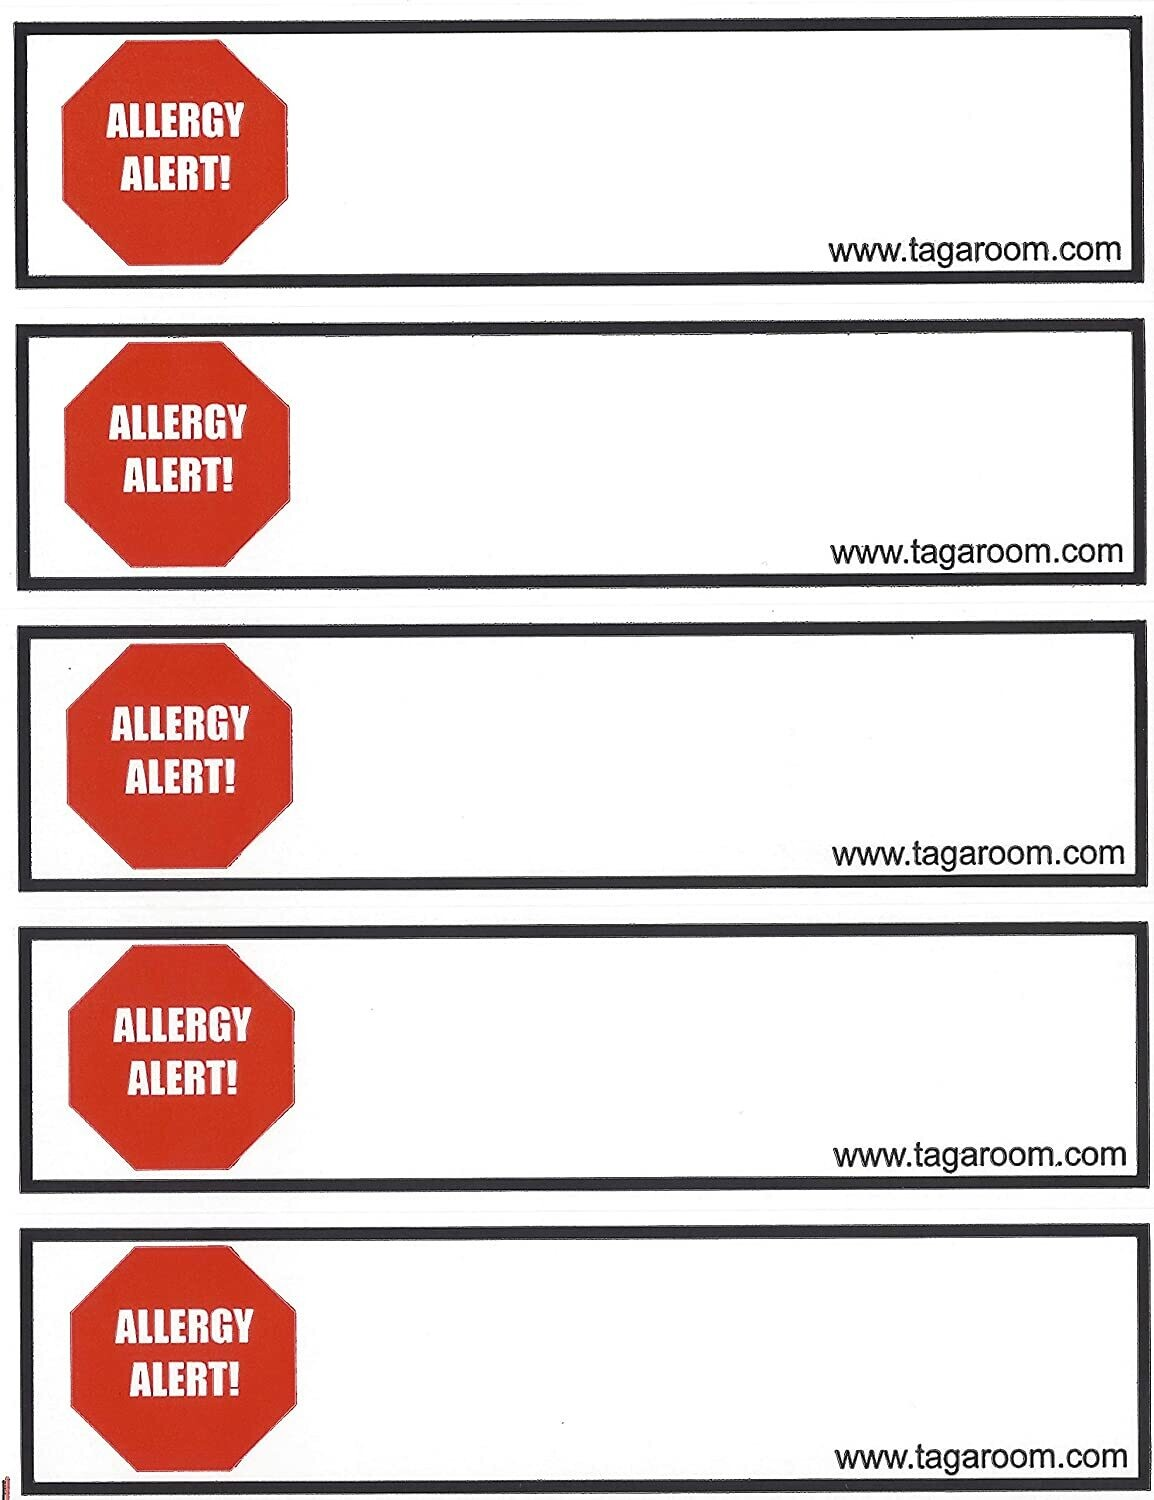 Tag-A-Room Color Coded Home Moving Alert Box Labels Stickers (Allergy Alert)